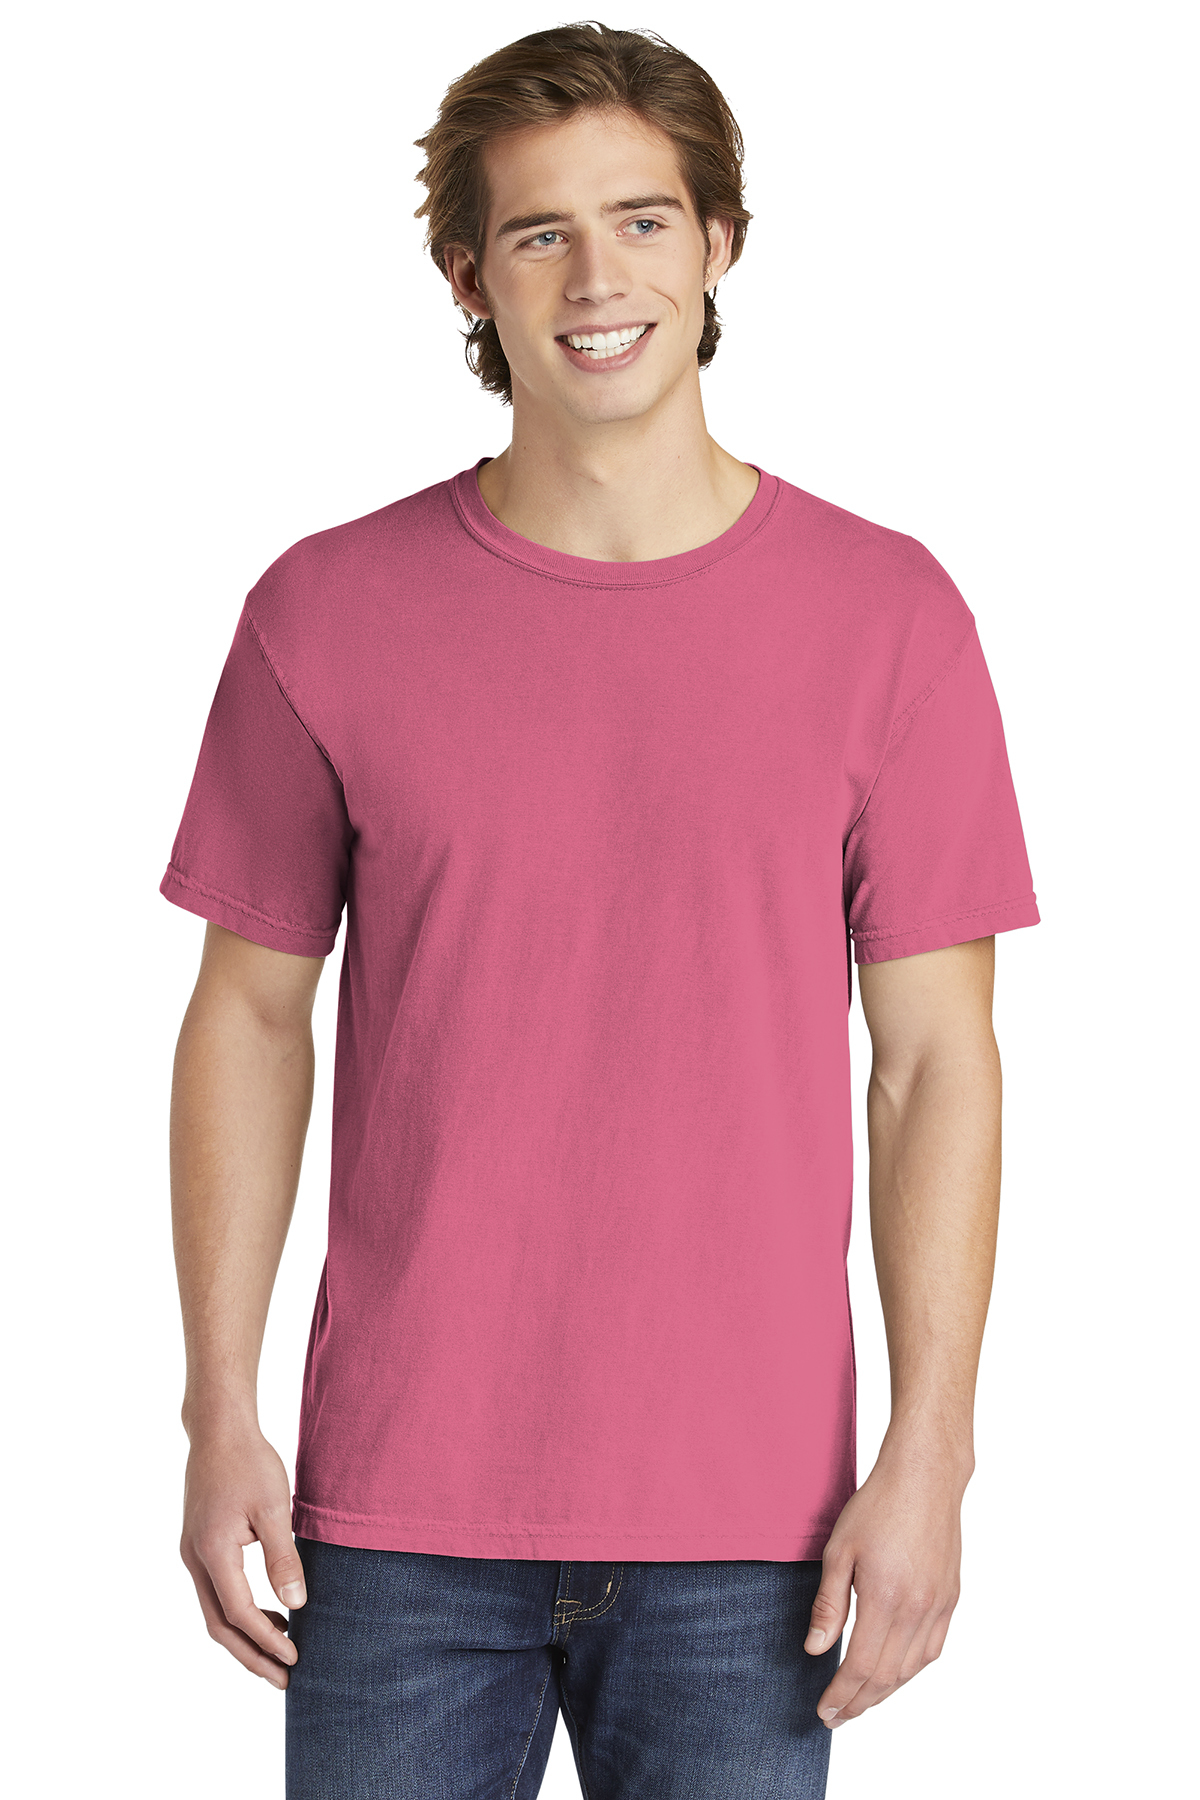 6f9041cbd Comfort Colors ® Heavyweight Ring Spun Tee | Comfort Colors ...